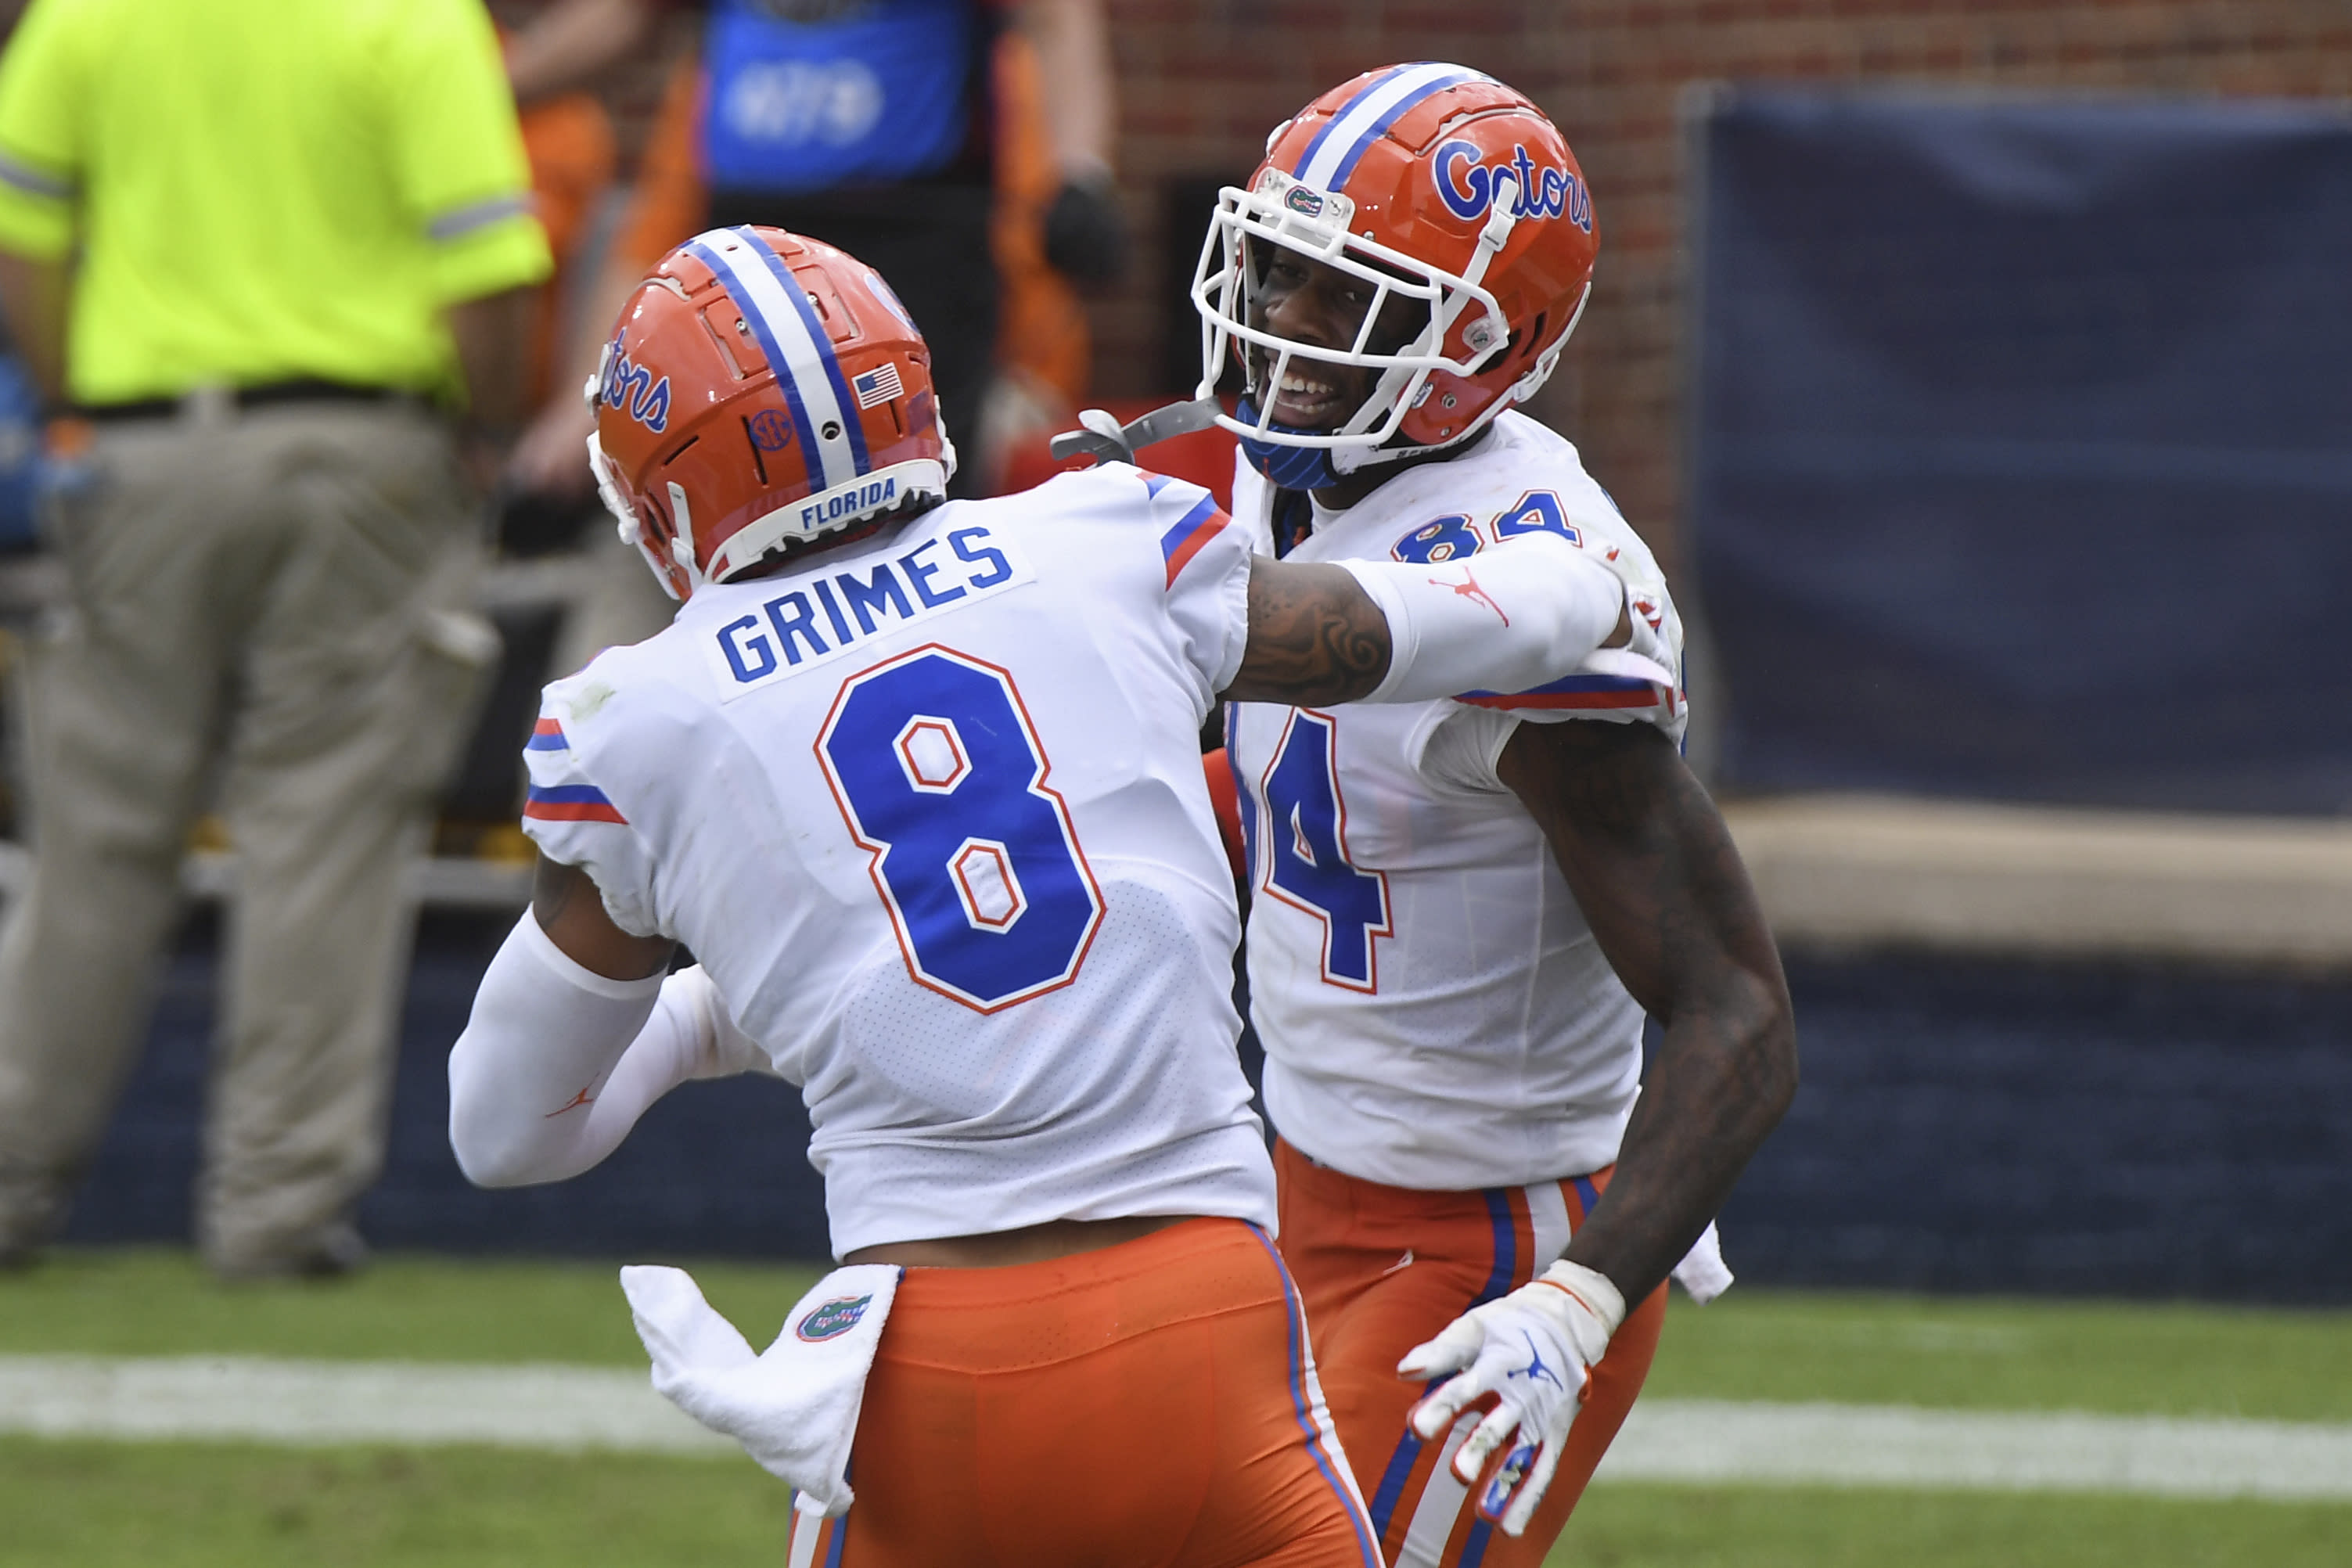 Florida tight end Kyle Pitts (84) and wide receiver Trevon Grimes (8) celebrate after a touchdown by Pitts during the second half of an NCAA college football game against Mississippi in Oxford, Miss., Saturday, Sept. 26, 2020. No. 5 Florida won 51-35. (AP Photo/Thomas Graning)